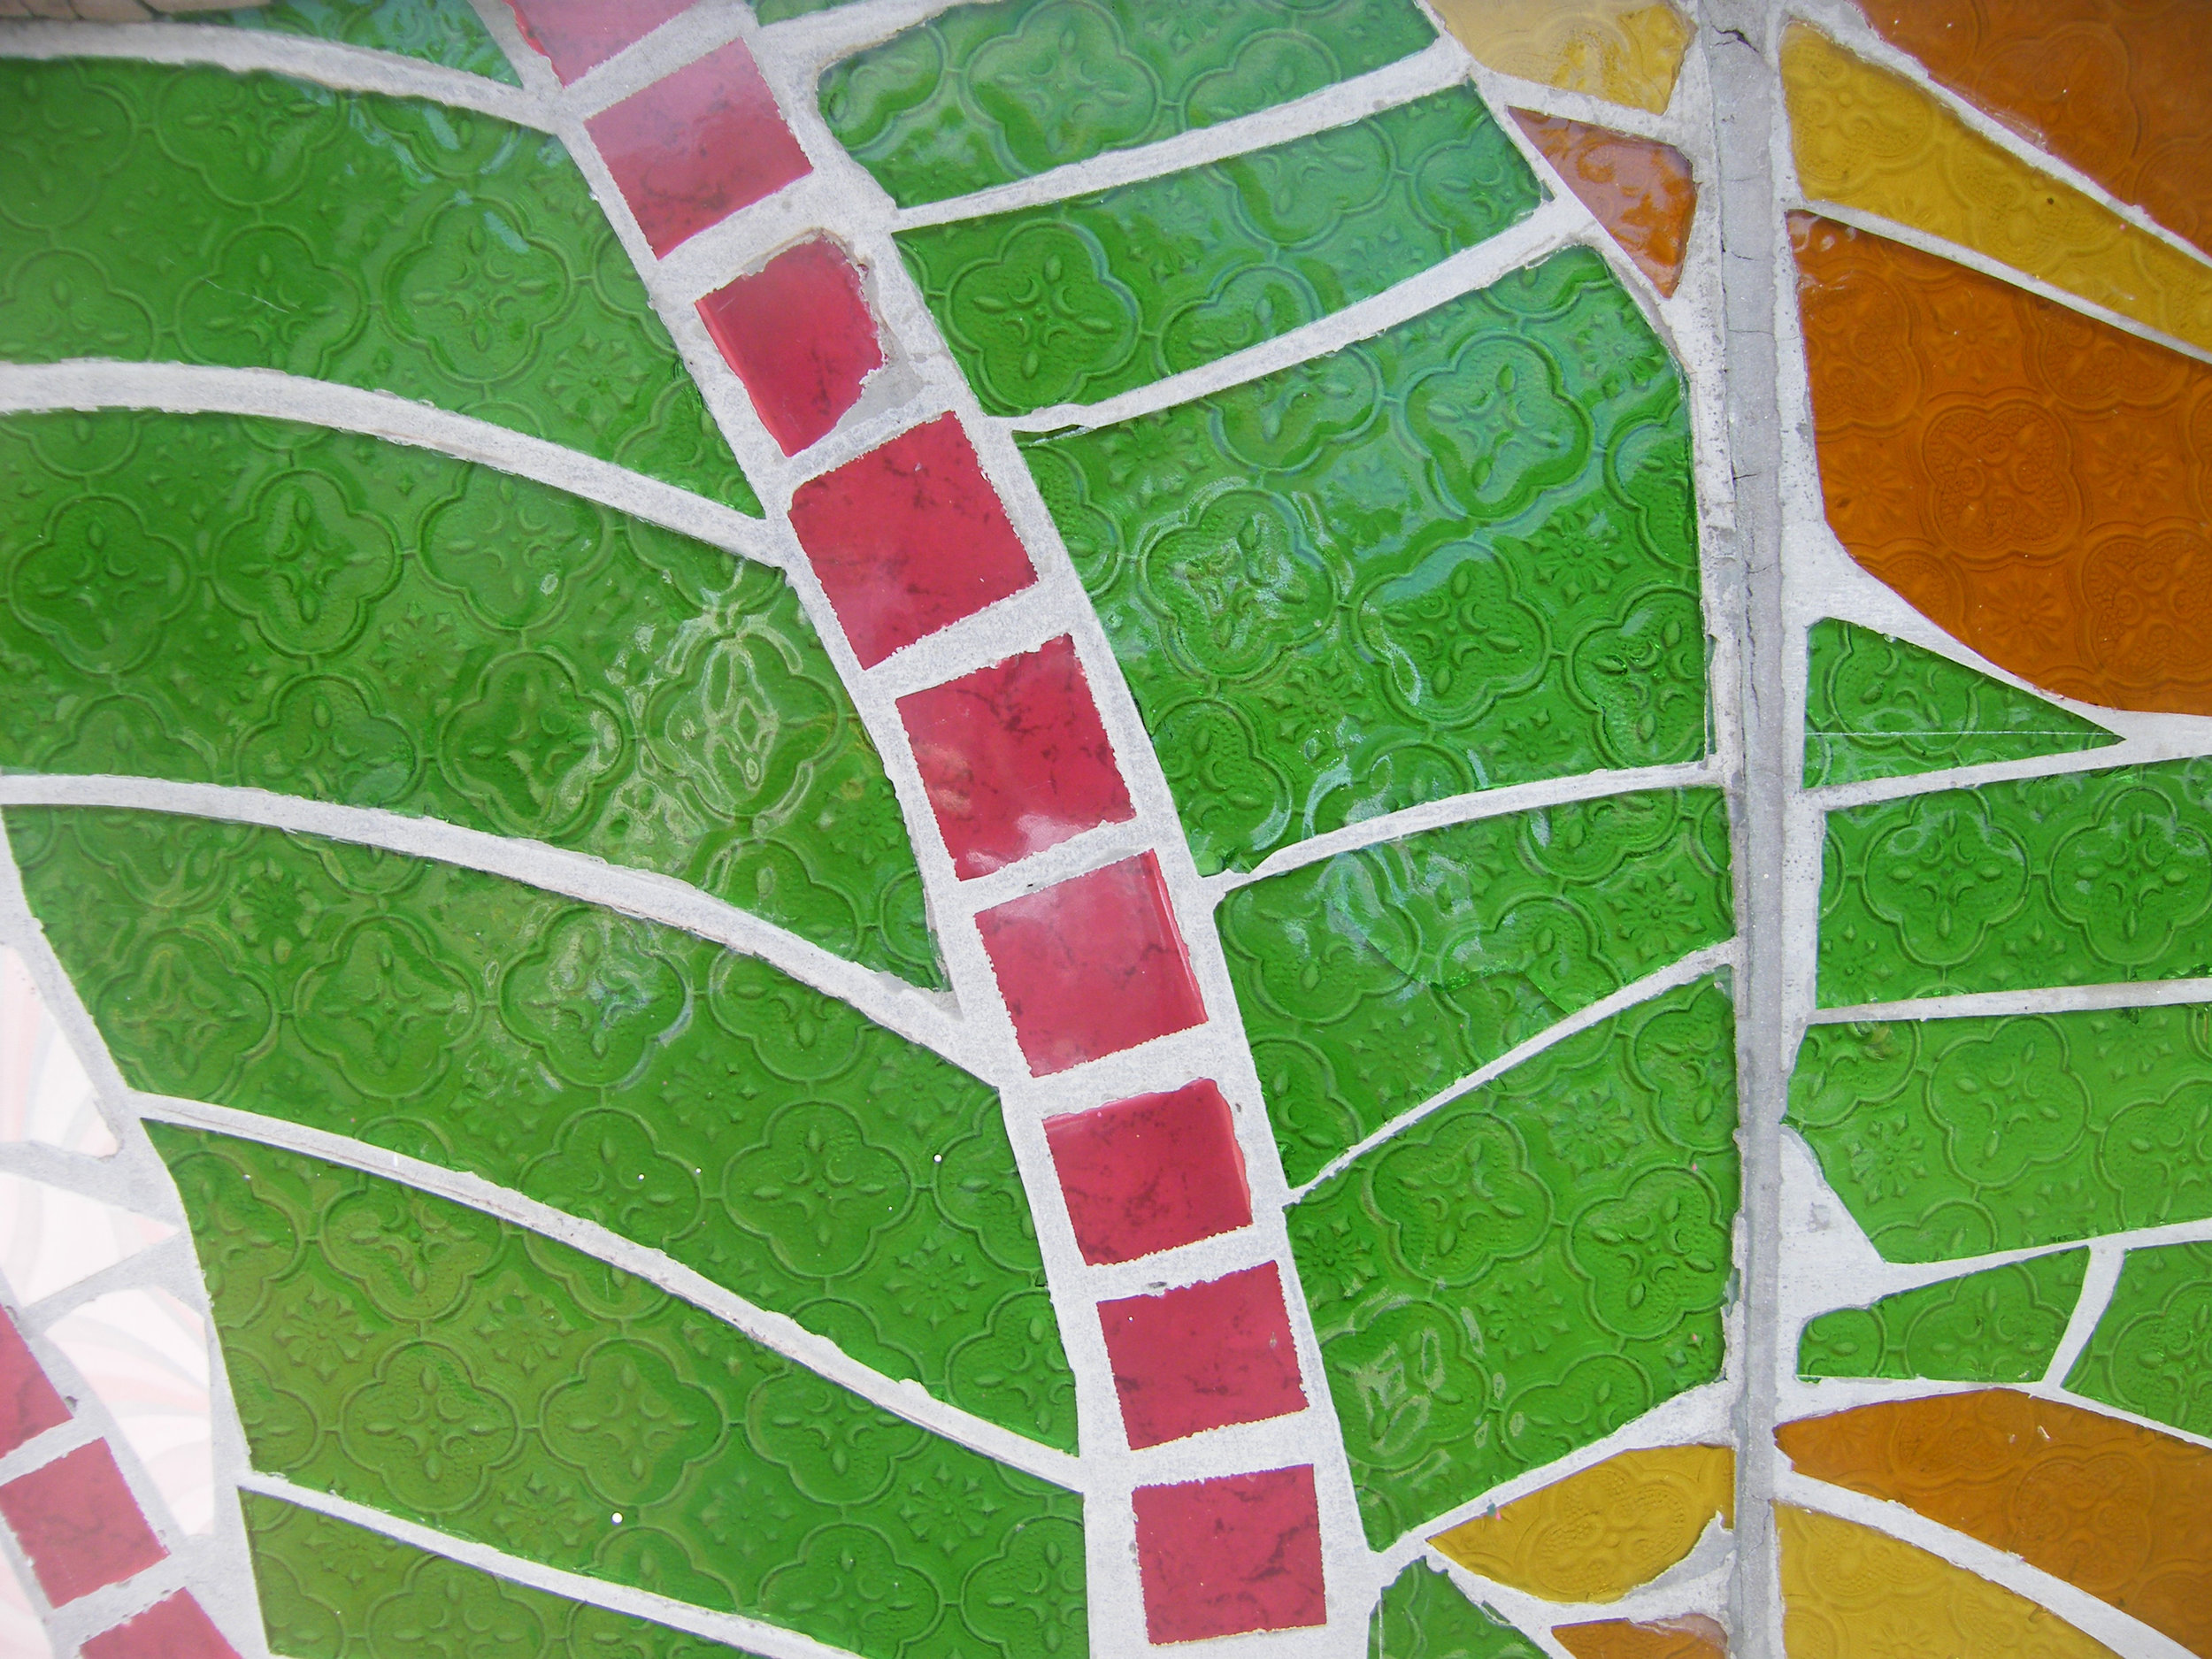 Tile art, Malaysia; photo by C. Schieve